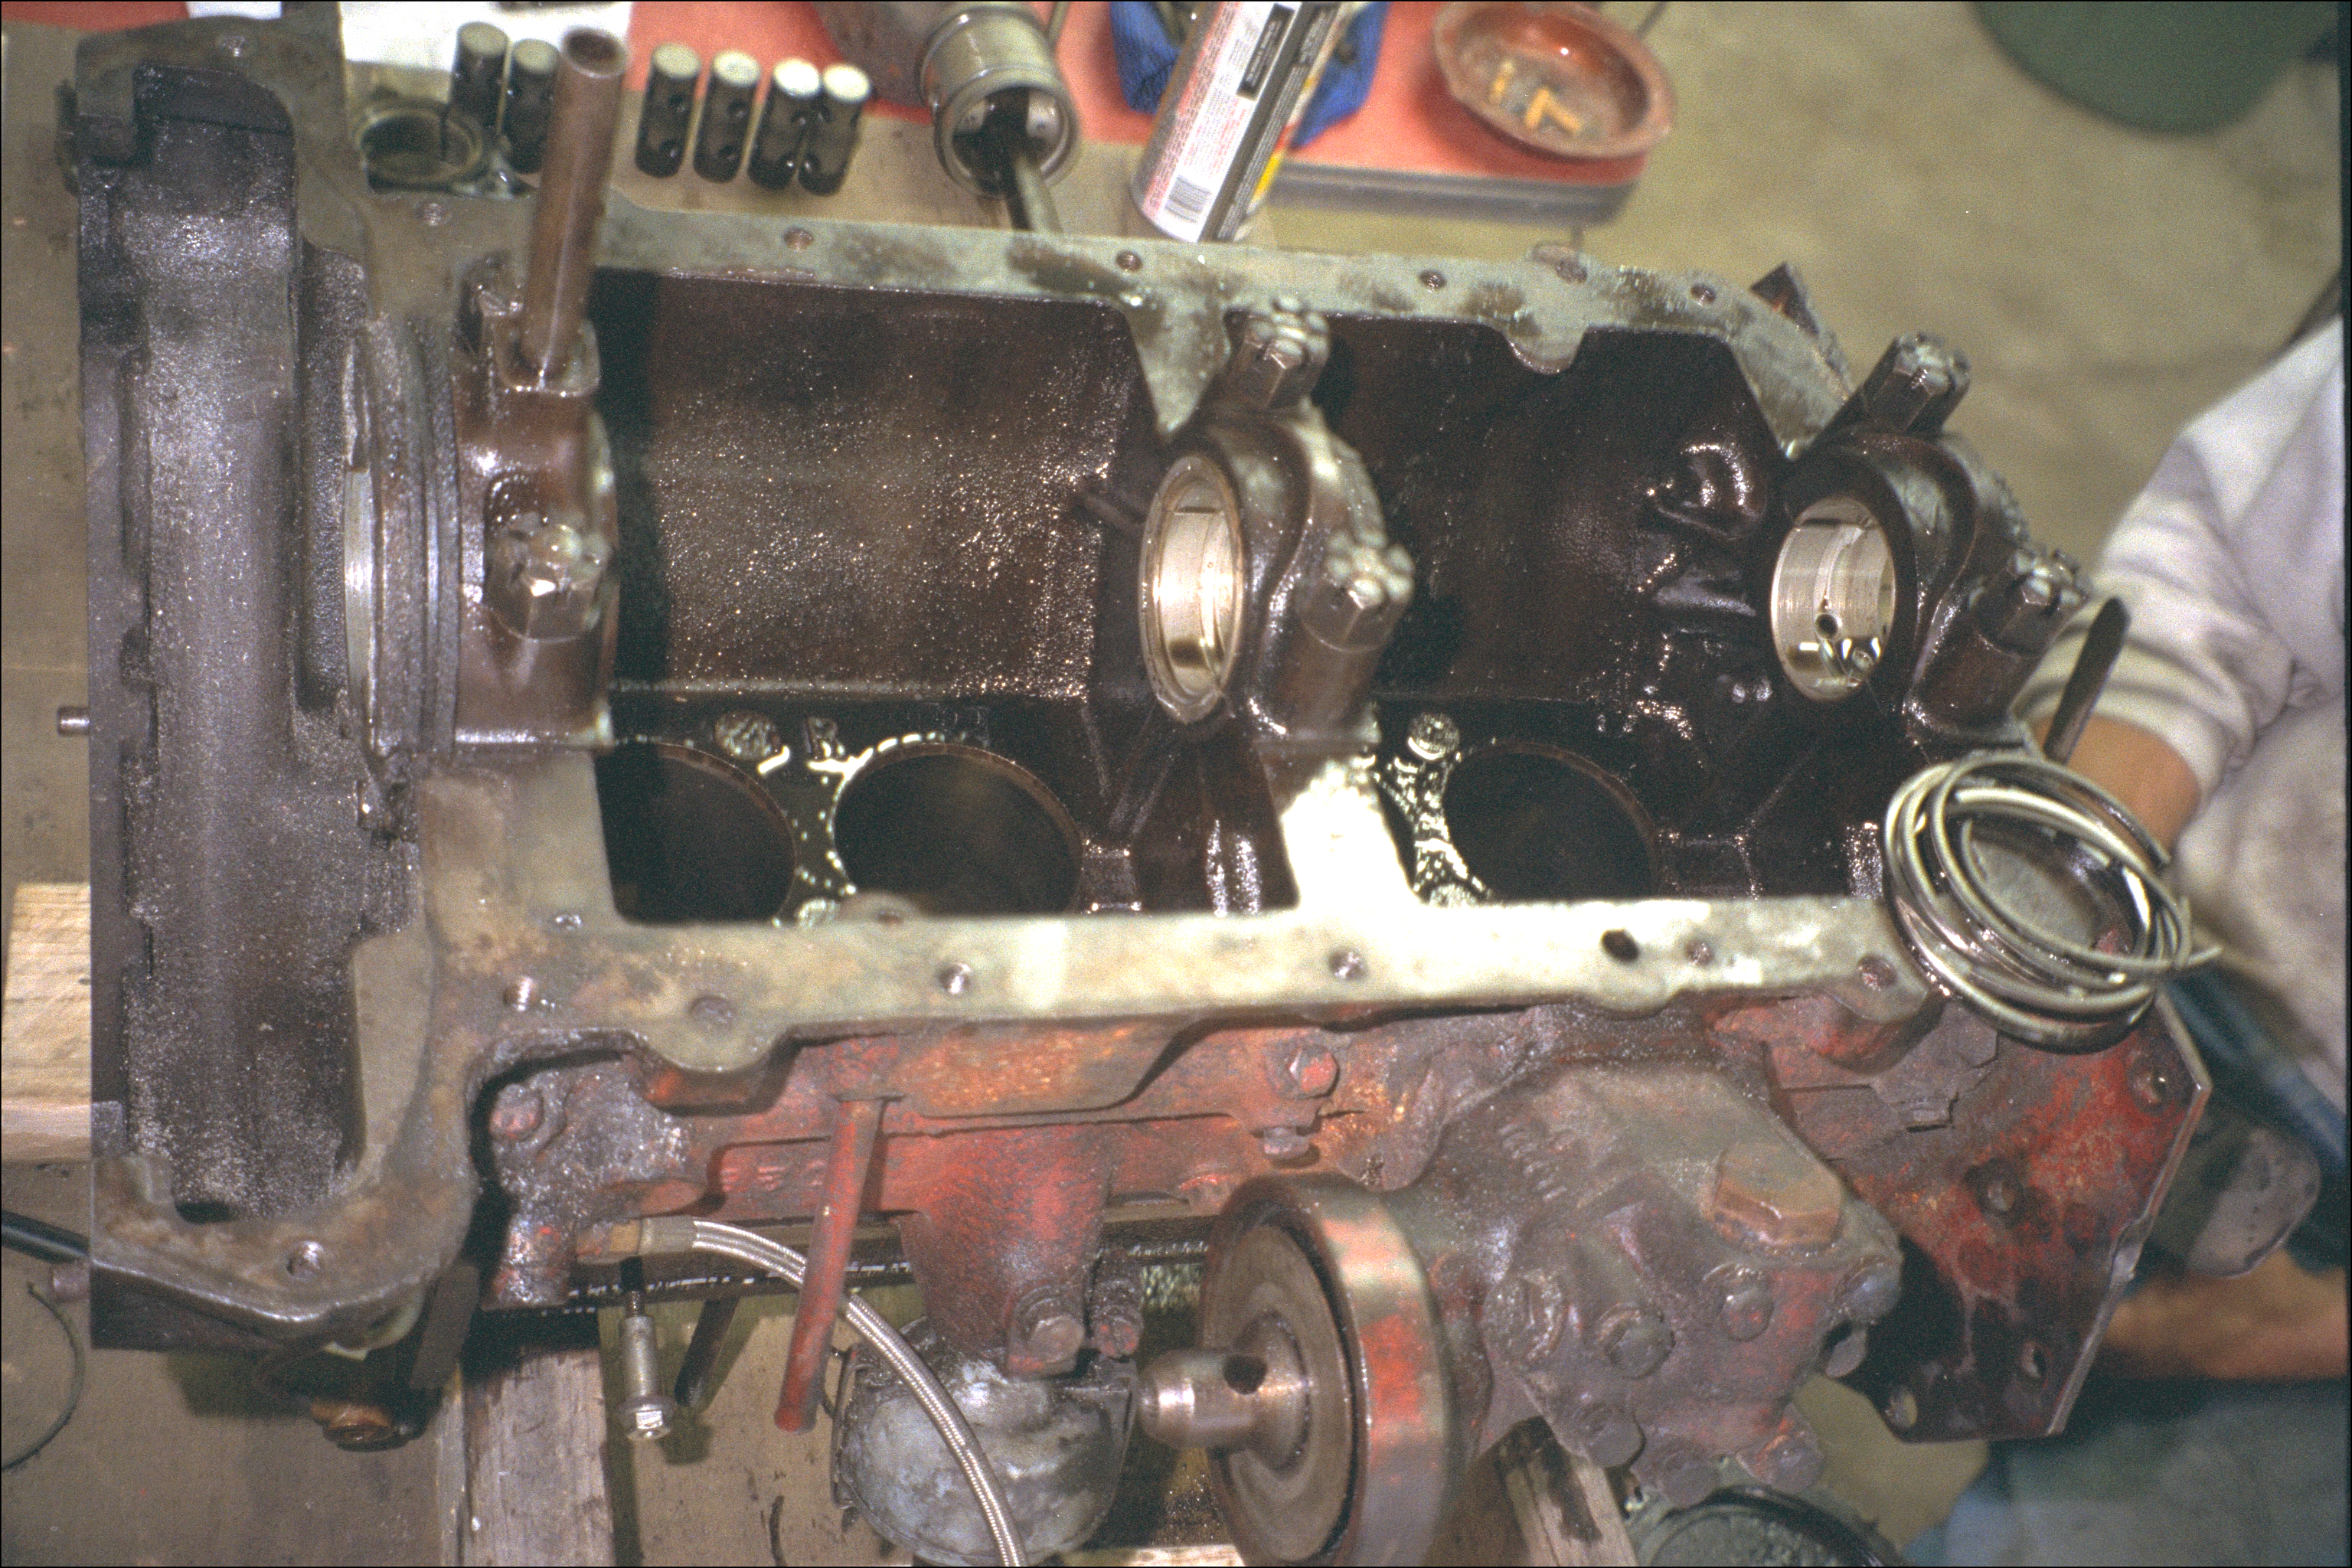 Engine interior, viewed from bottom